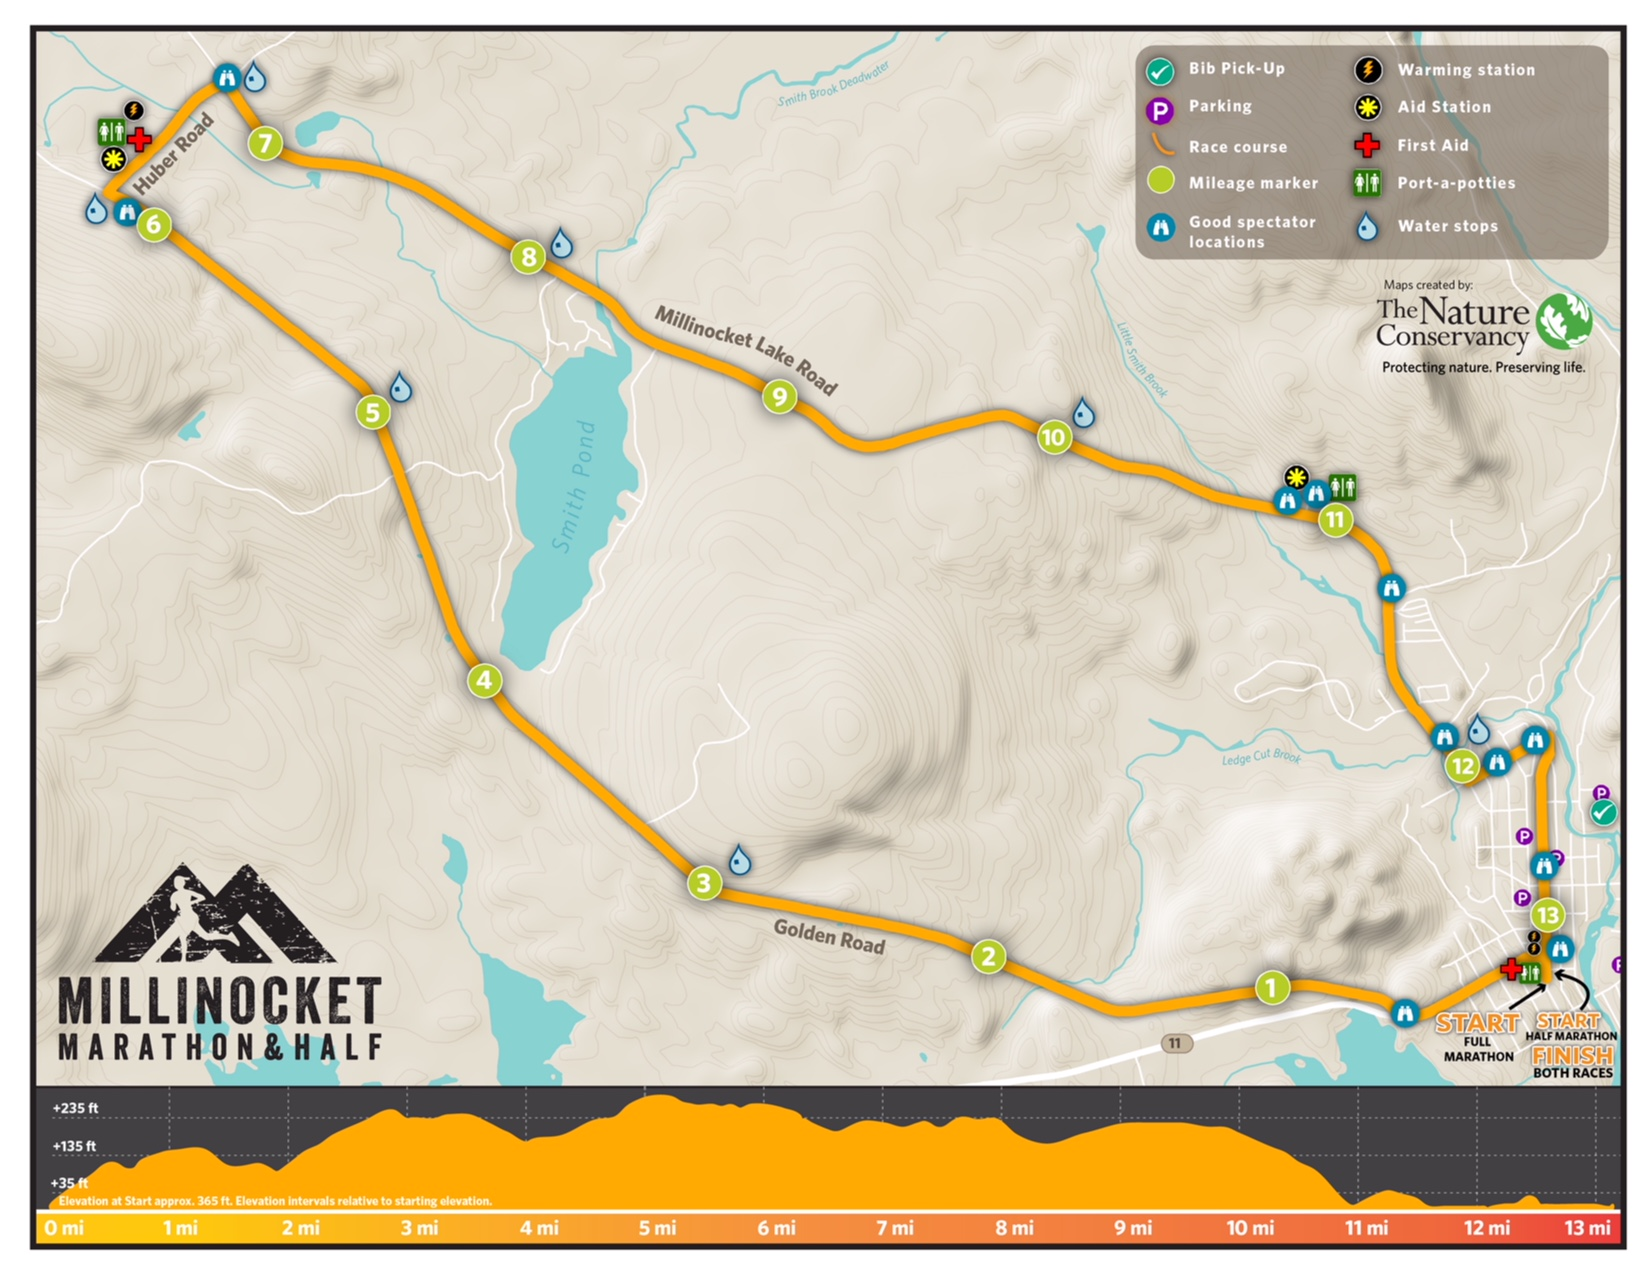 millinocket-course-map.jpg